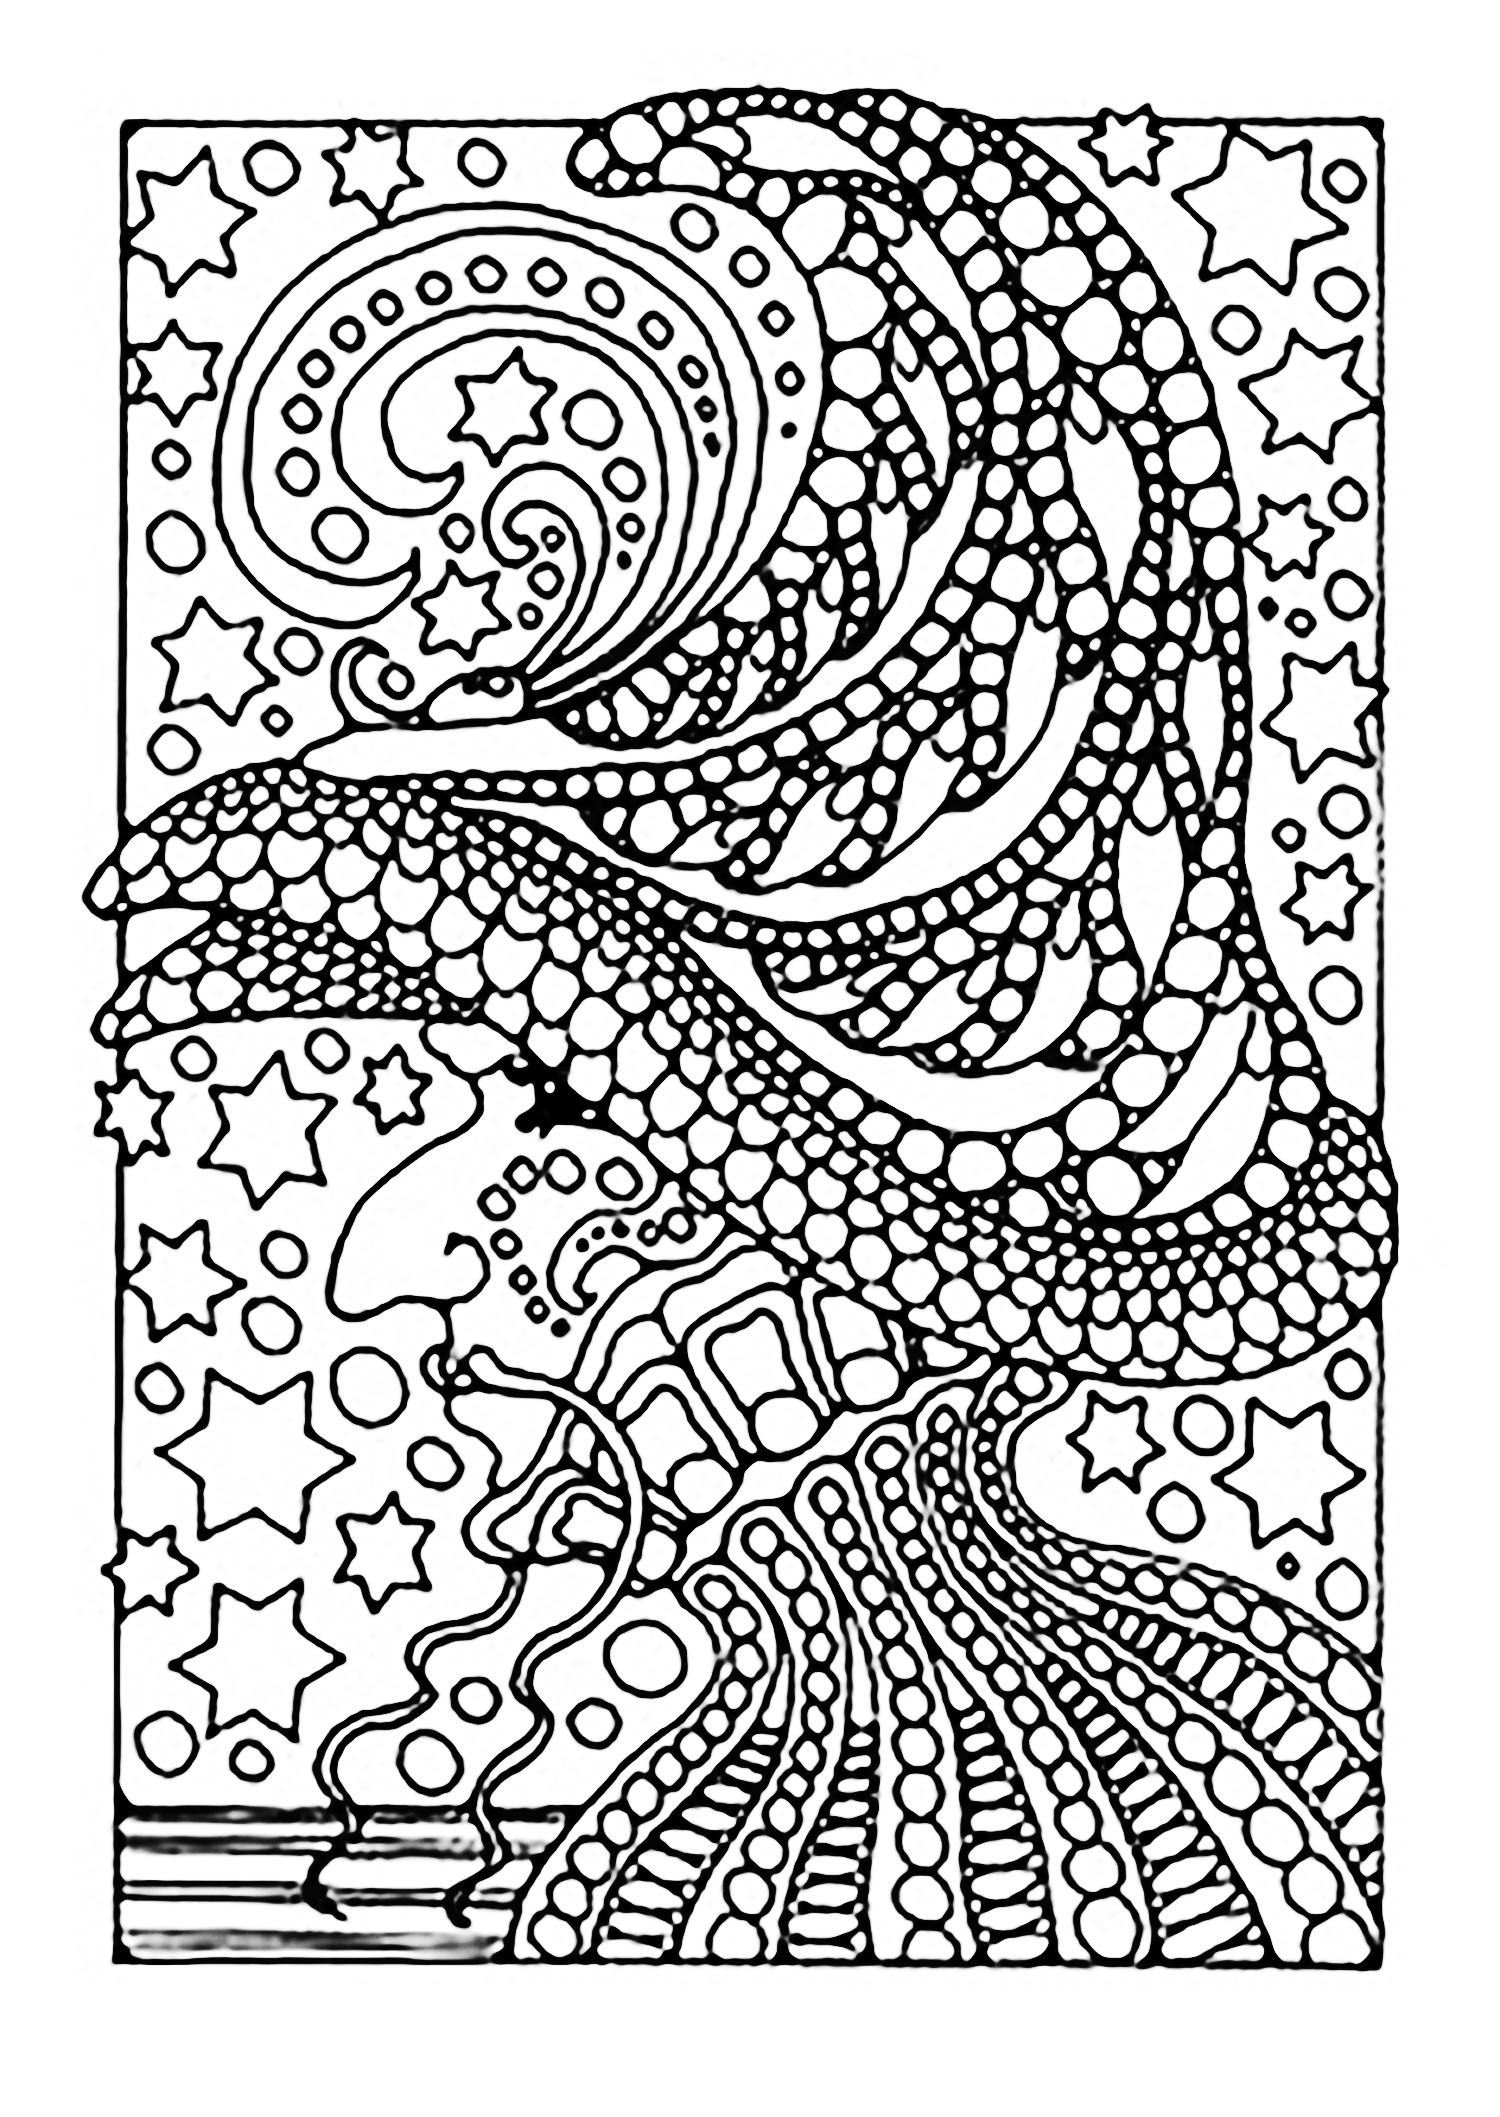 Mushroom Coloring Pages  Gallery 8o - Free For Children